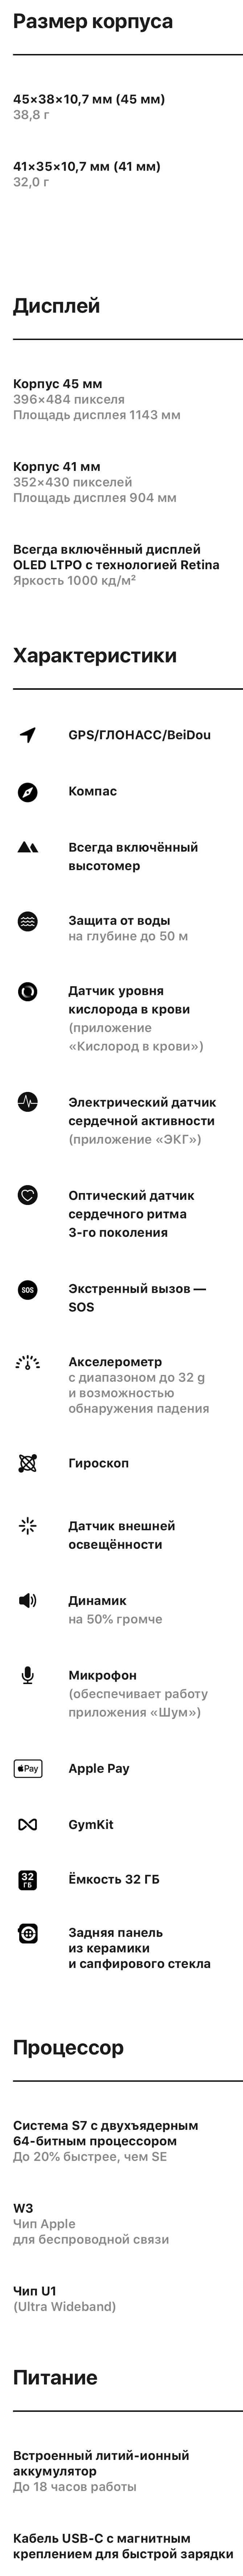 Specifications (specifications) Apple Watch Series 7